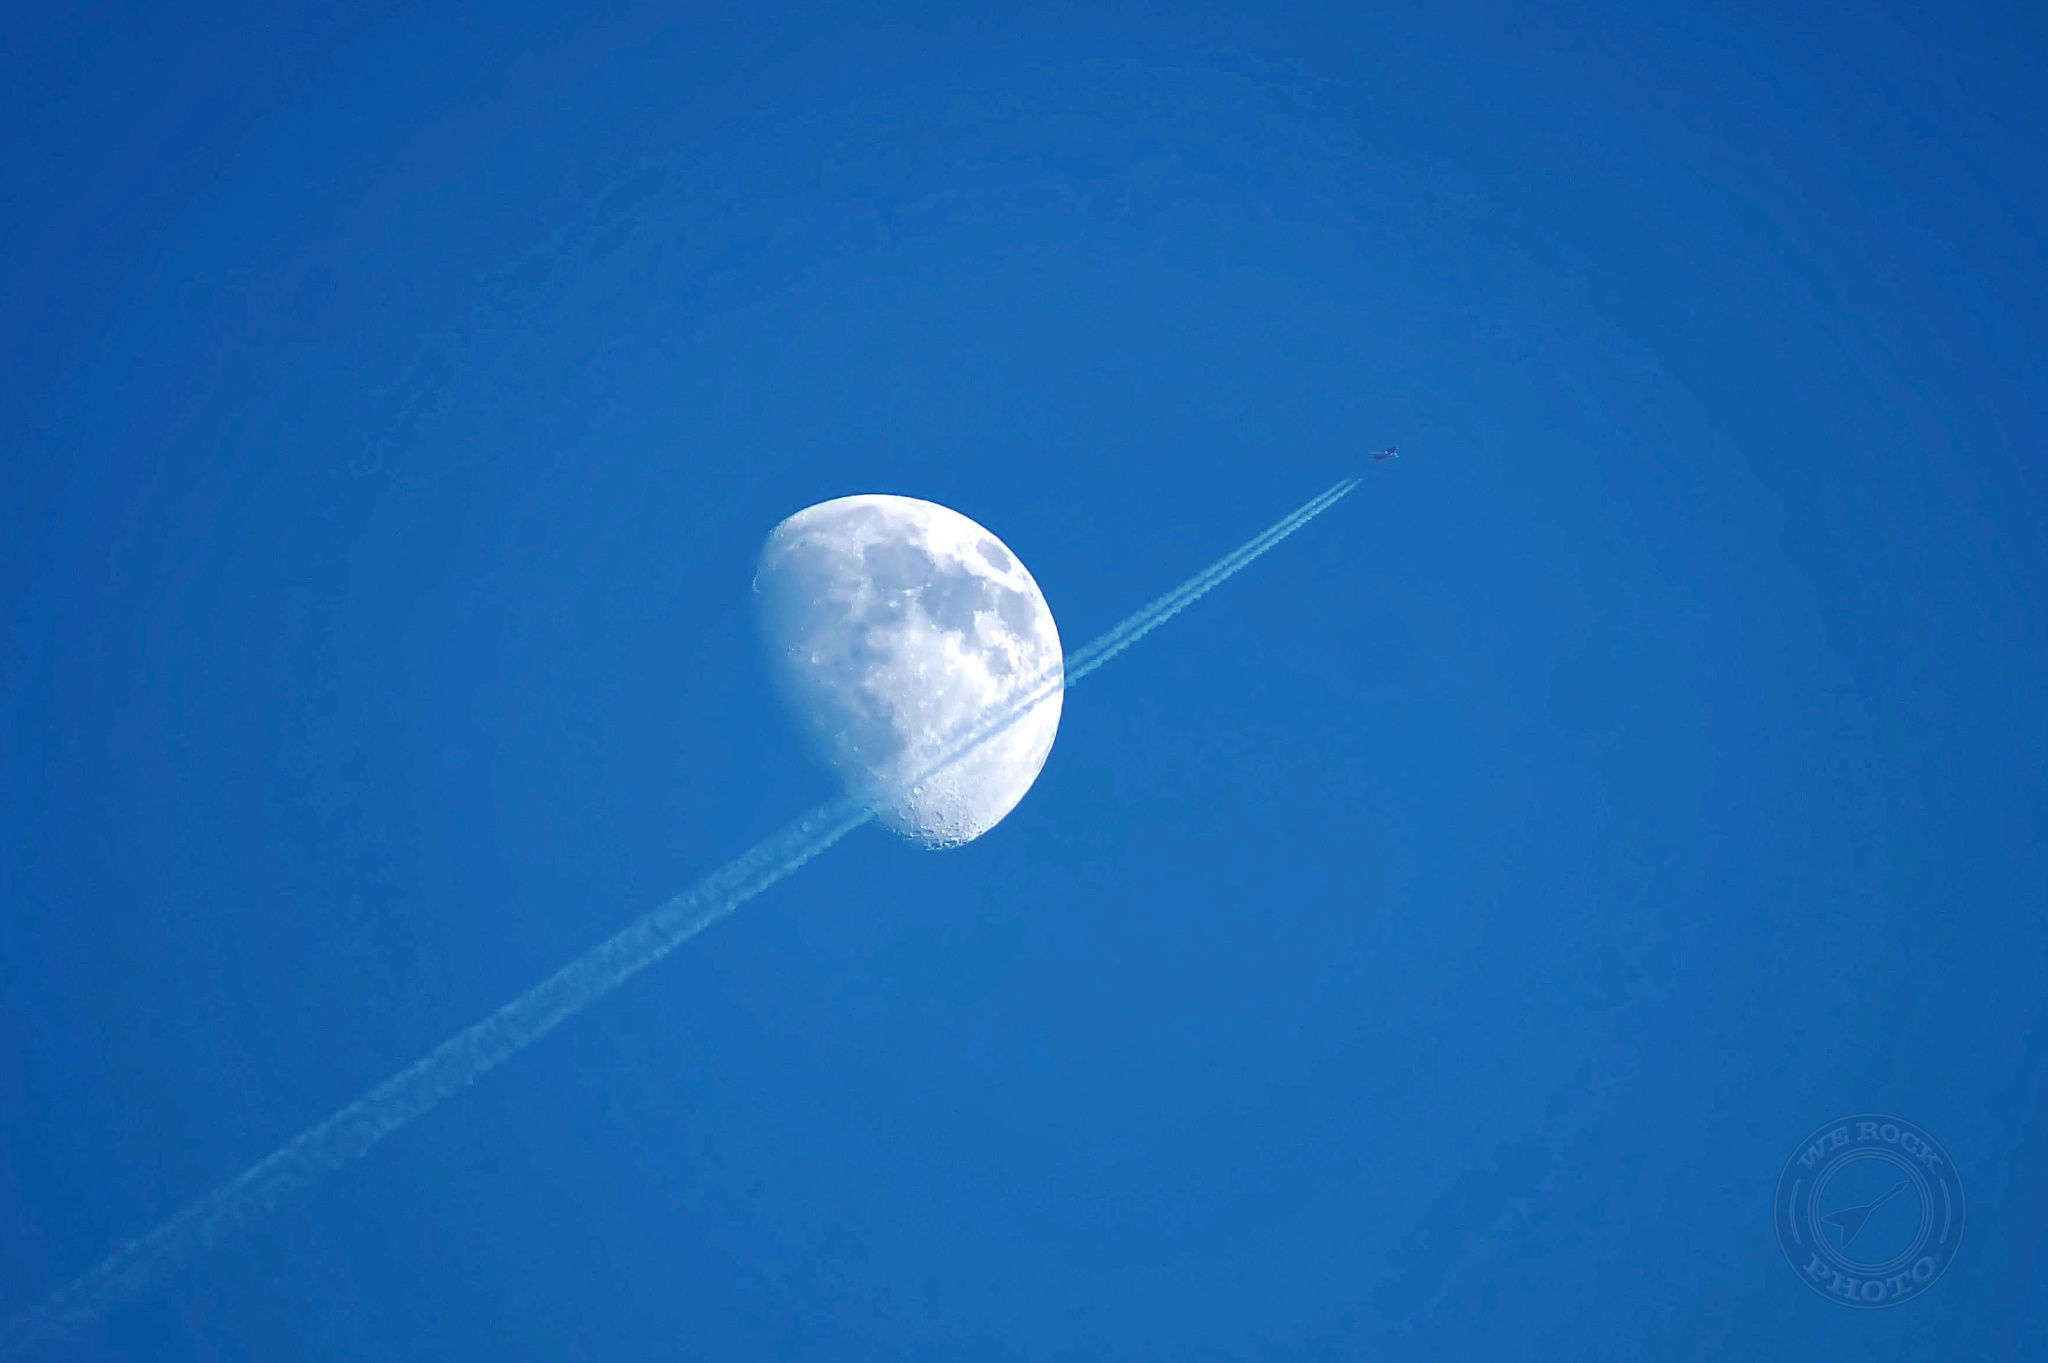 Lunar Fly by by Dominic T. Flauto